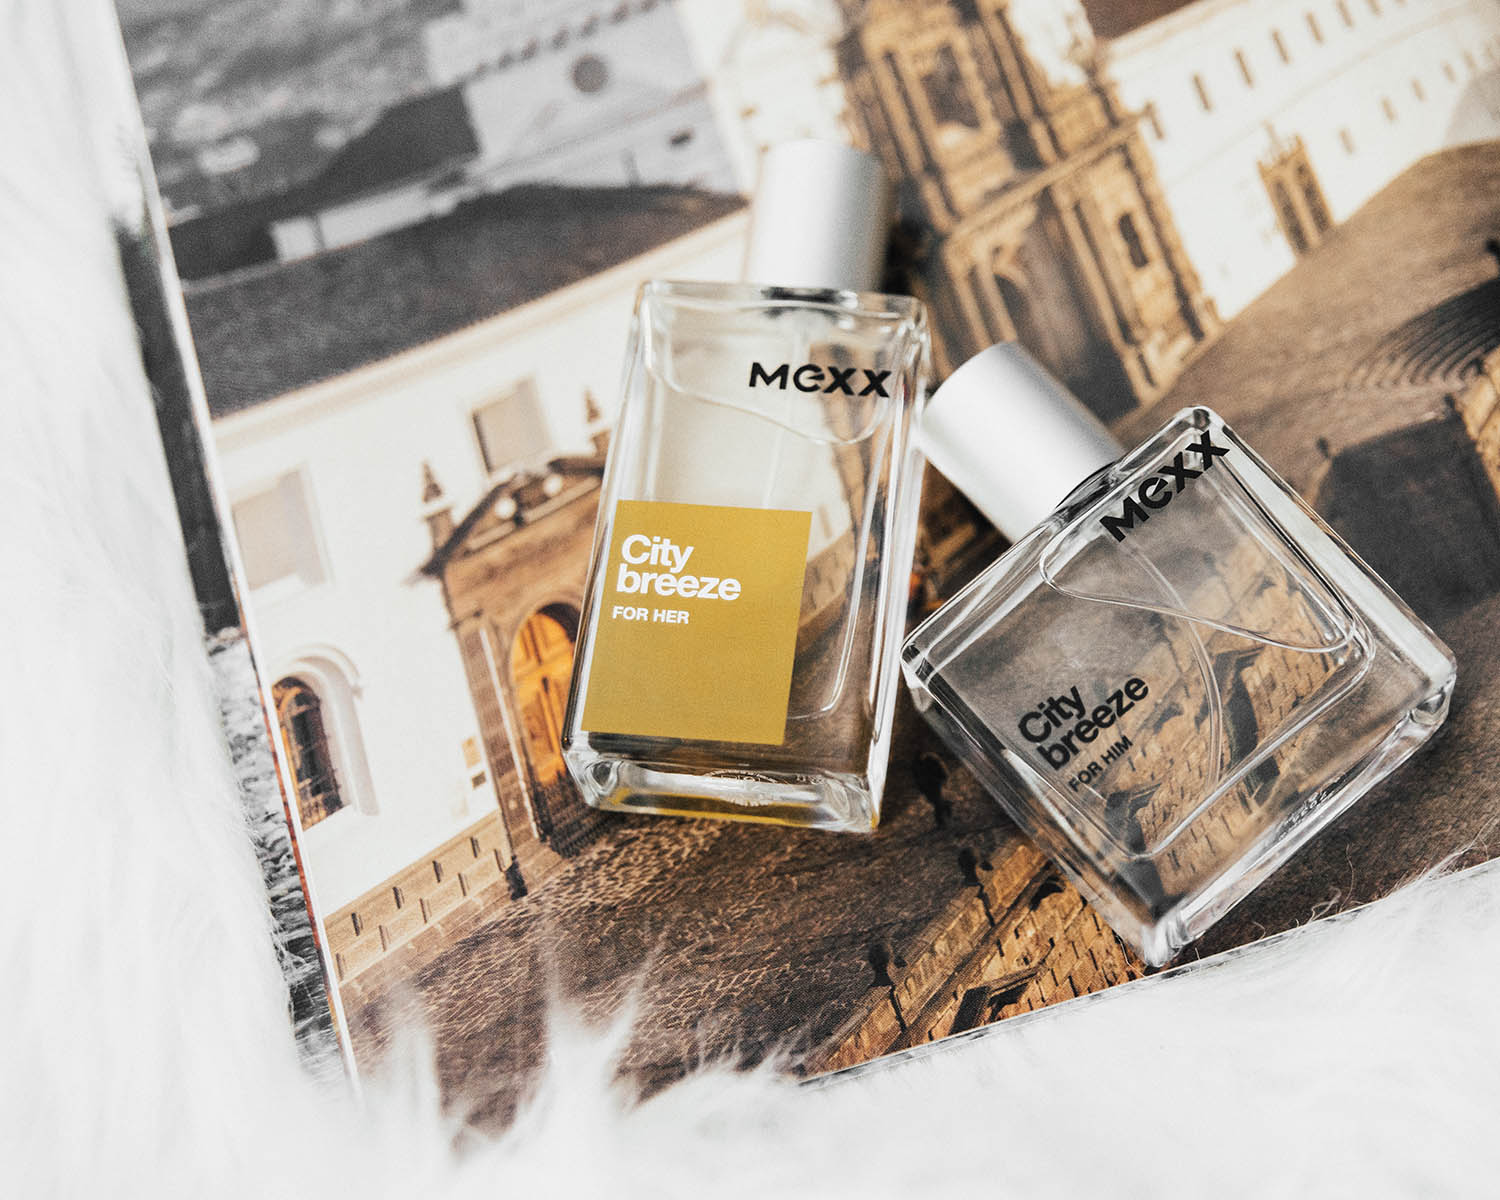 His and Hers Fragrances: Mexx City Breeze for her & for him